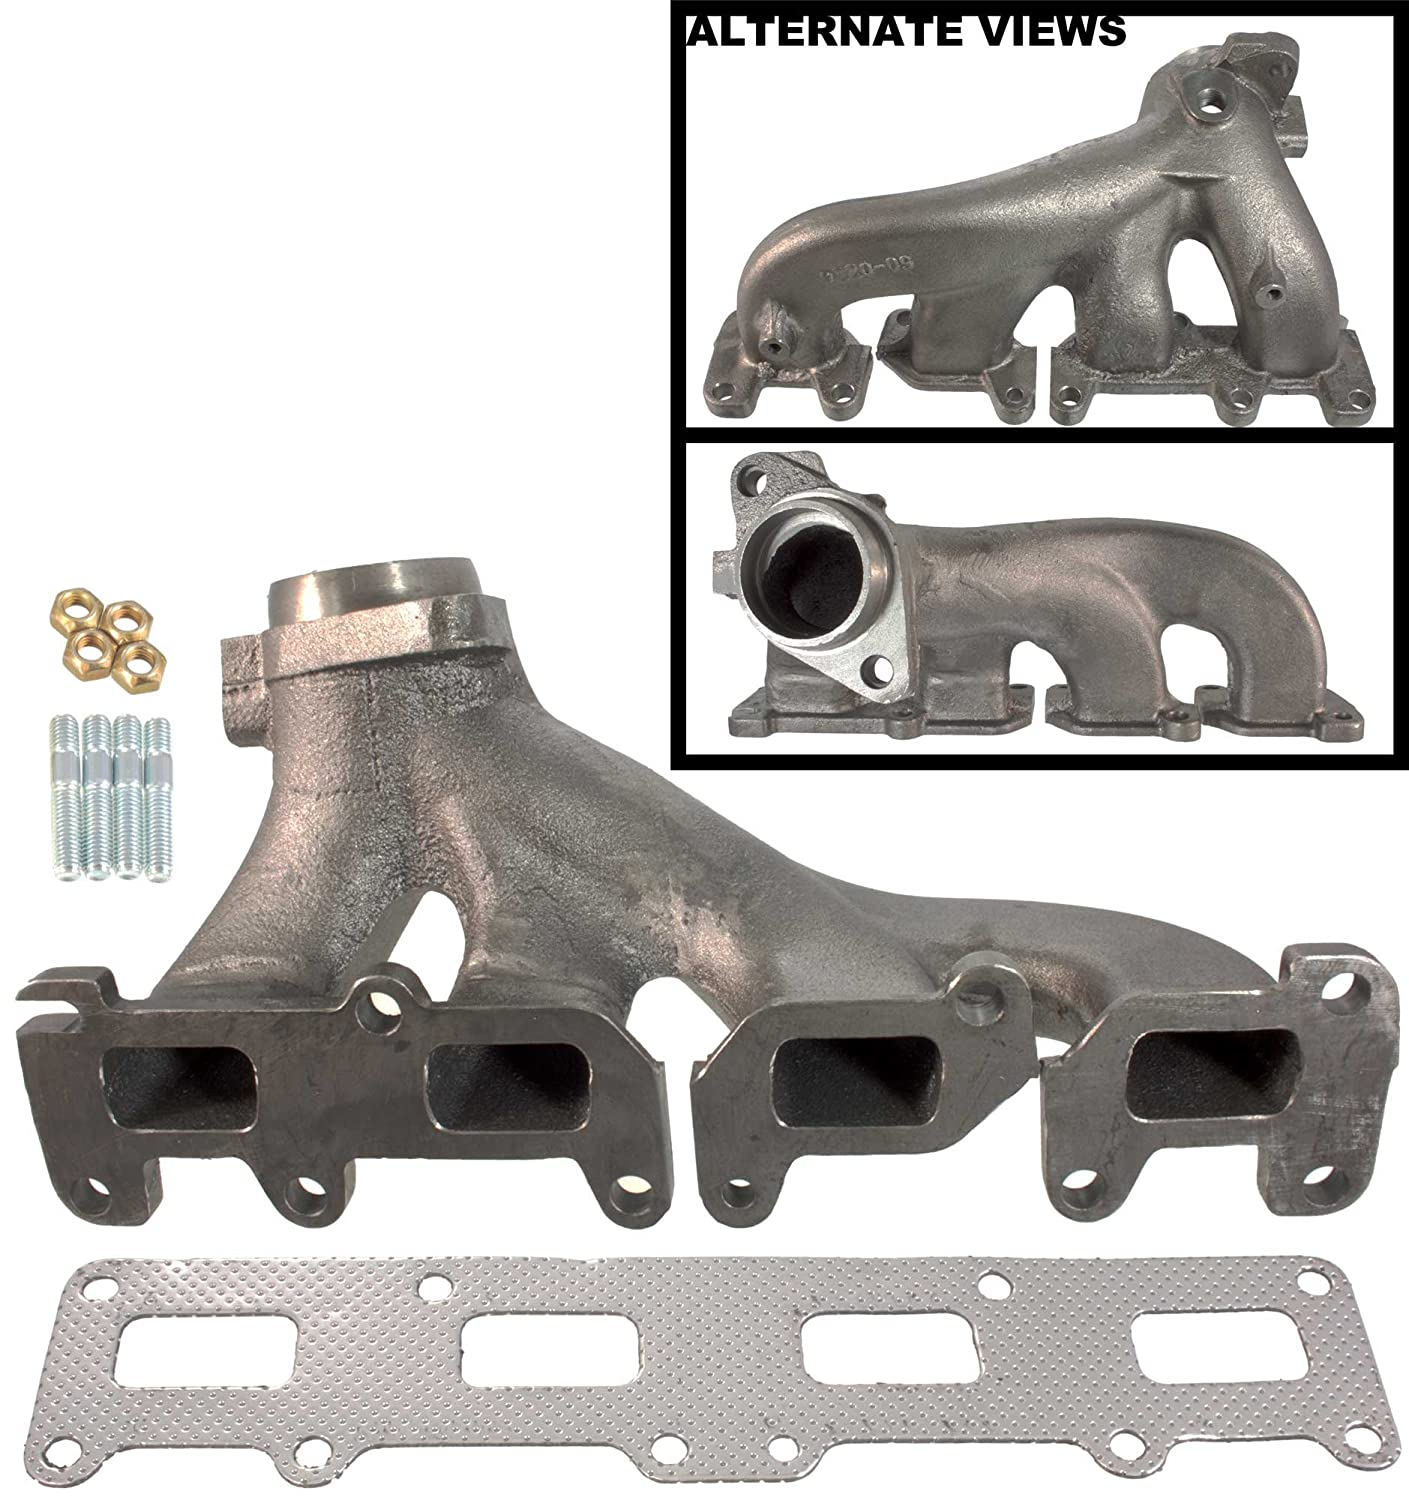 Apdty 785907 Exhaust Manifold With Gasket Fits 2002 2006 Jeep Liberty W 24l 4 Cylinder Engine 2003 Wrangler